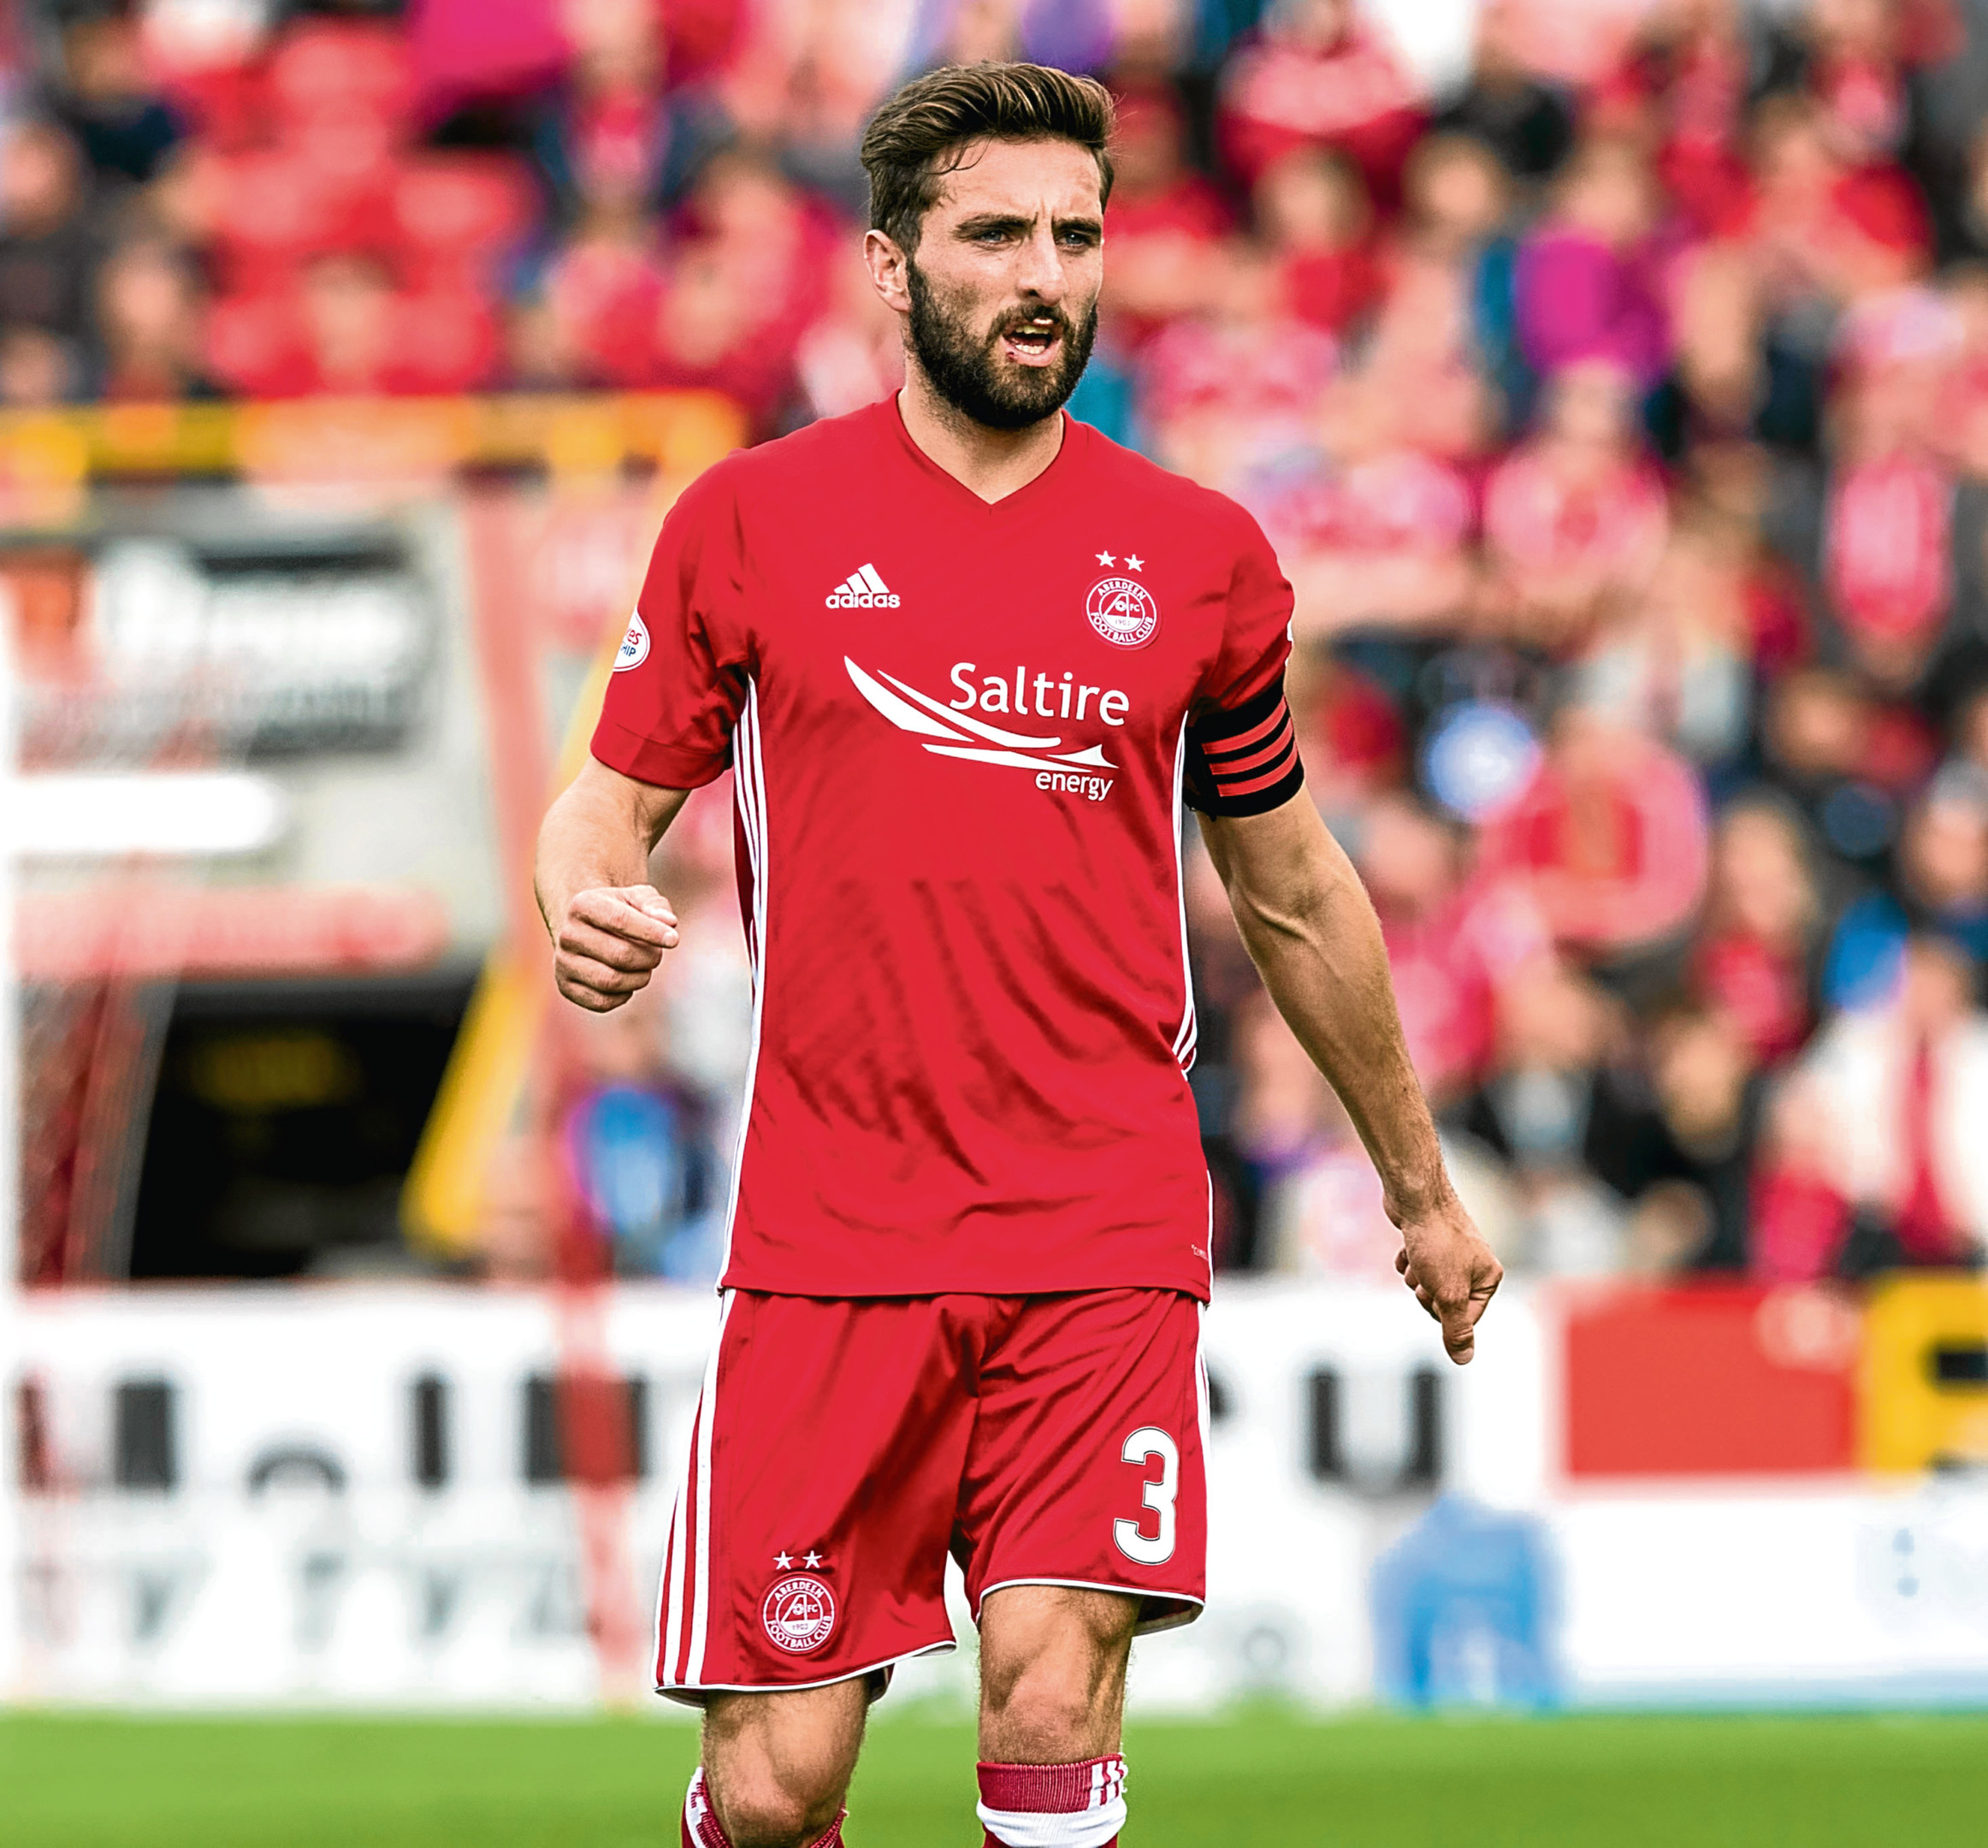 Graeme Shinnie in action for Aberdeen.